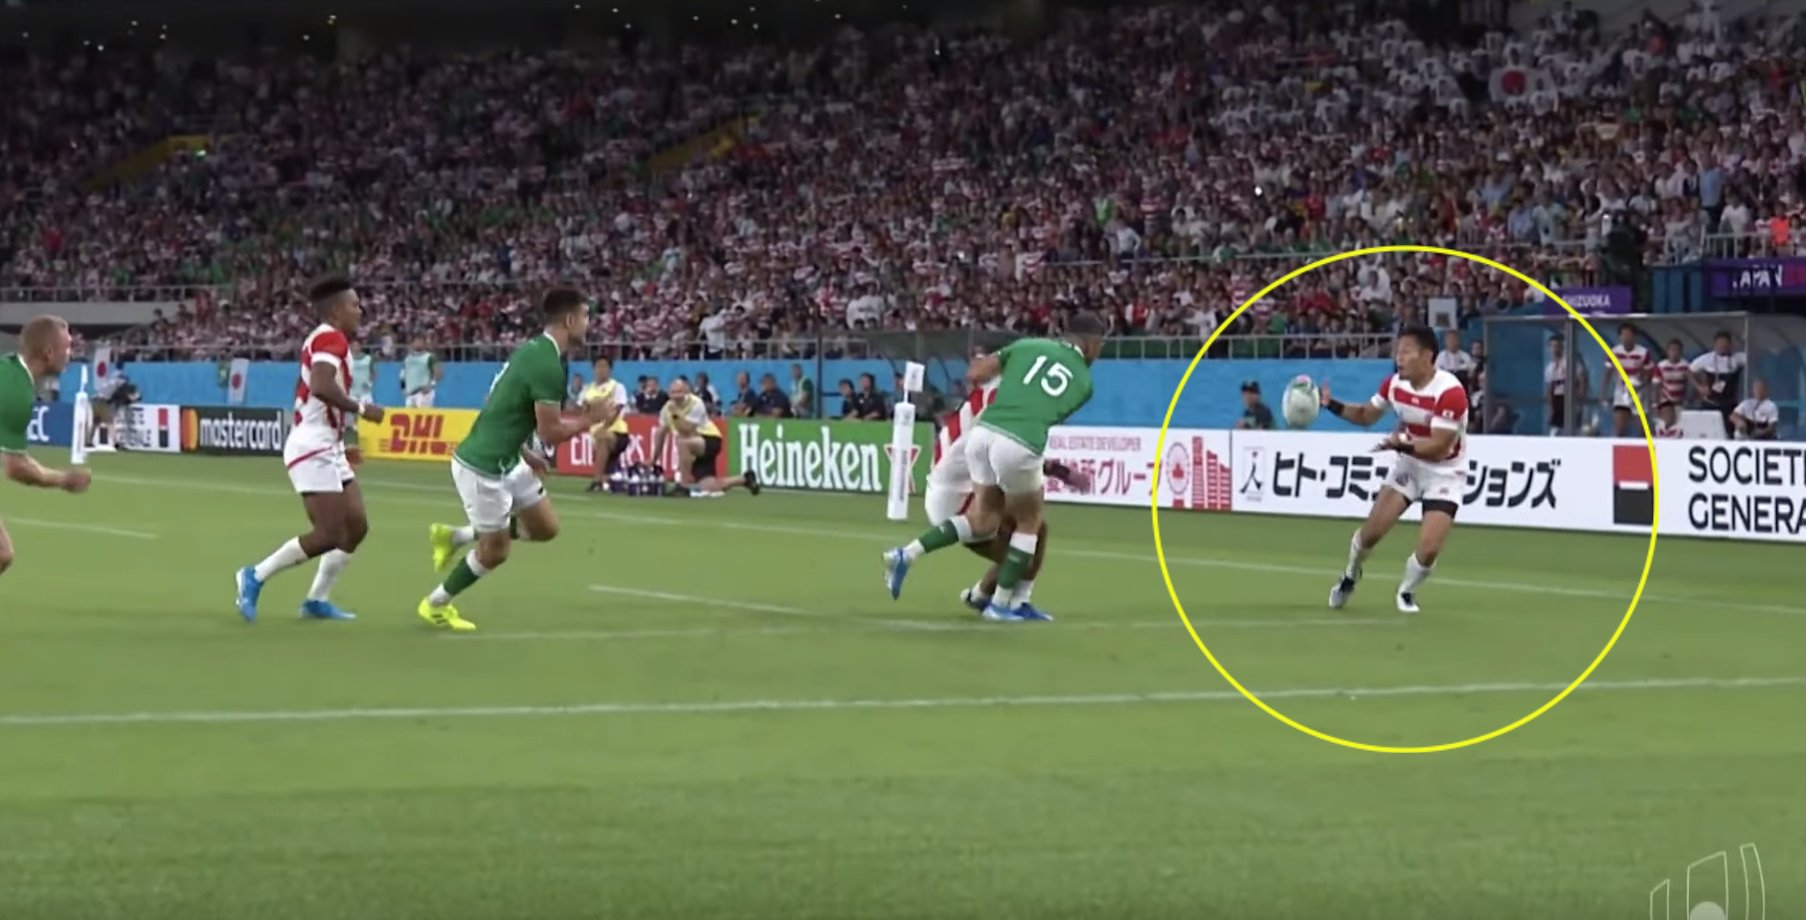 Watch all the highlights of Japan's landmark victory over Ireland